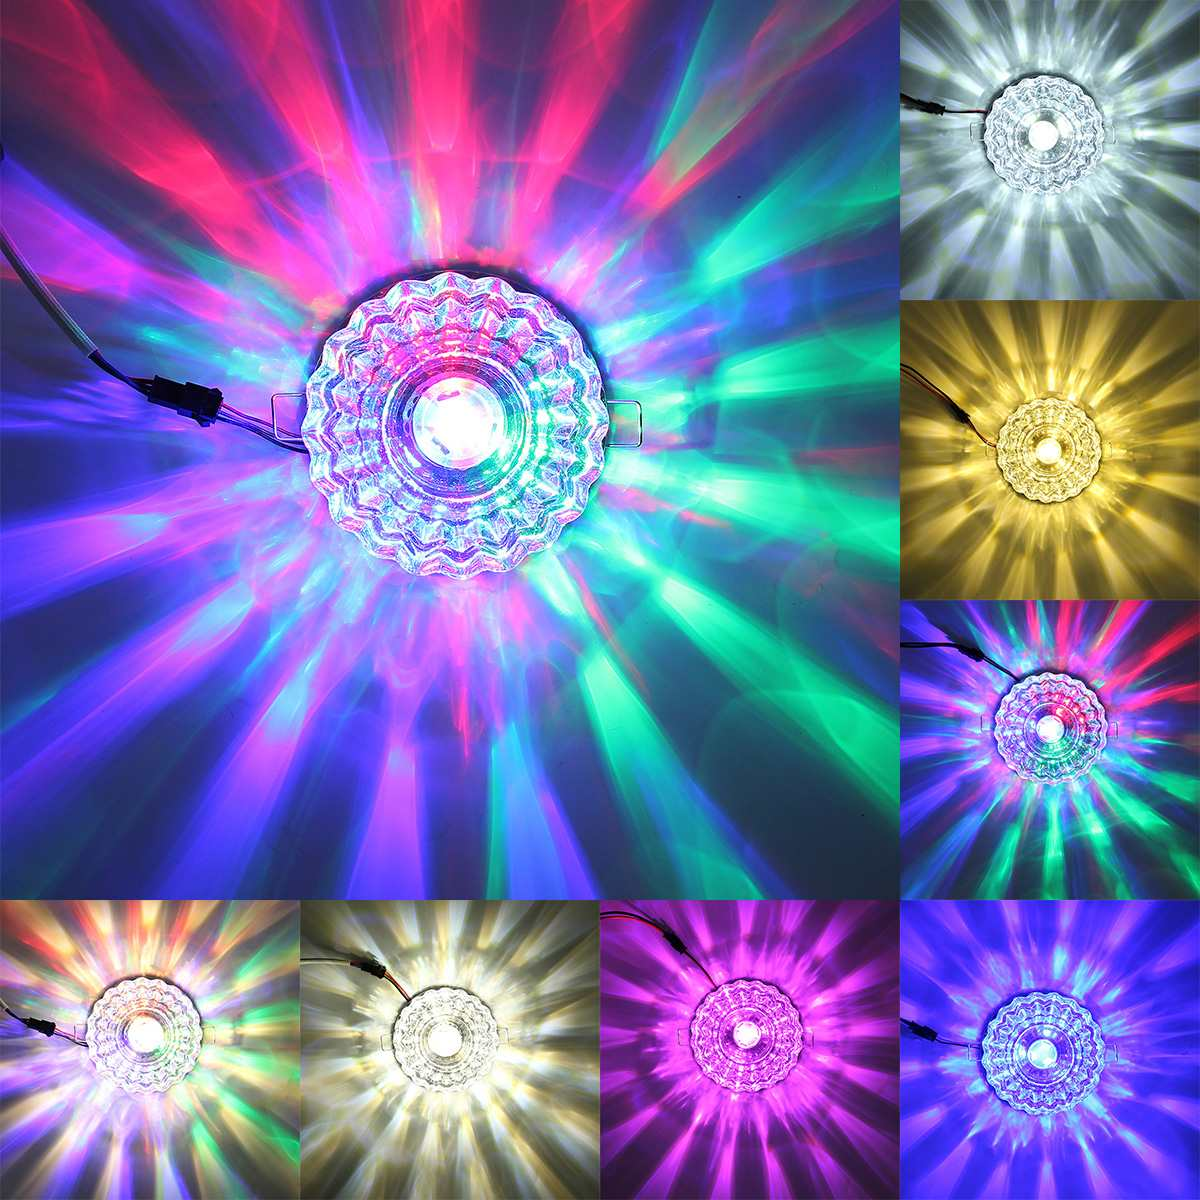 3W 7 Modes Modern Crystal Flush Mounted Round Ceiling Light Multicolor Living Room Corridor Aisle Lamp Home Lighting Decoration3W 7 Modes Modern Crystal Flush Mounted Round Ceiling Light Multicolor Living Room Corridor Aisle Lamp Home Lighting Decoration